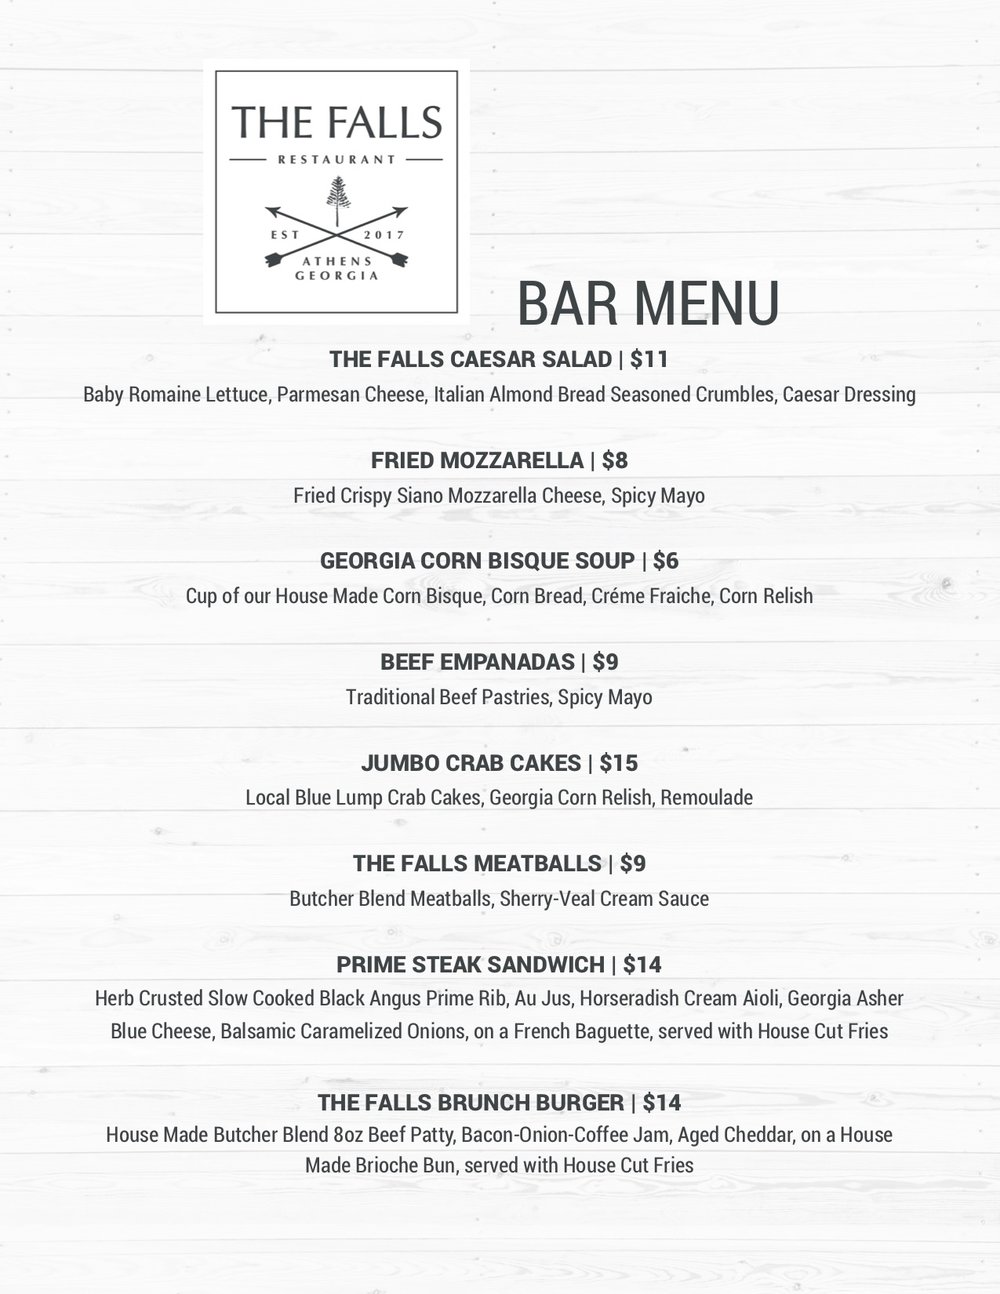 TheFallsBar_Menu - Revised 4.26.18.jpg